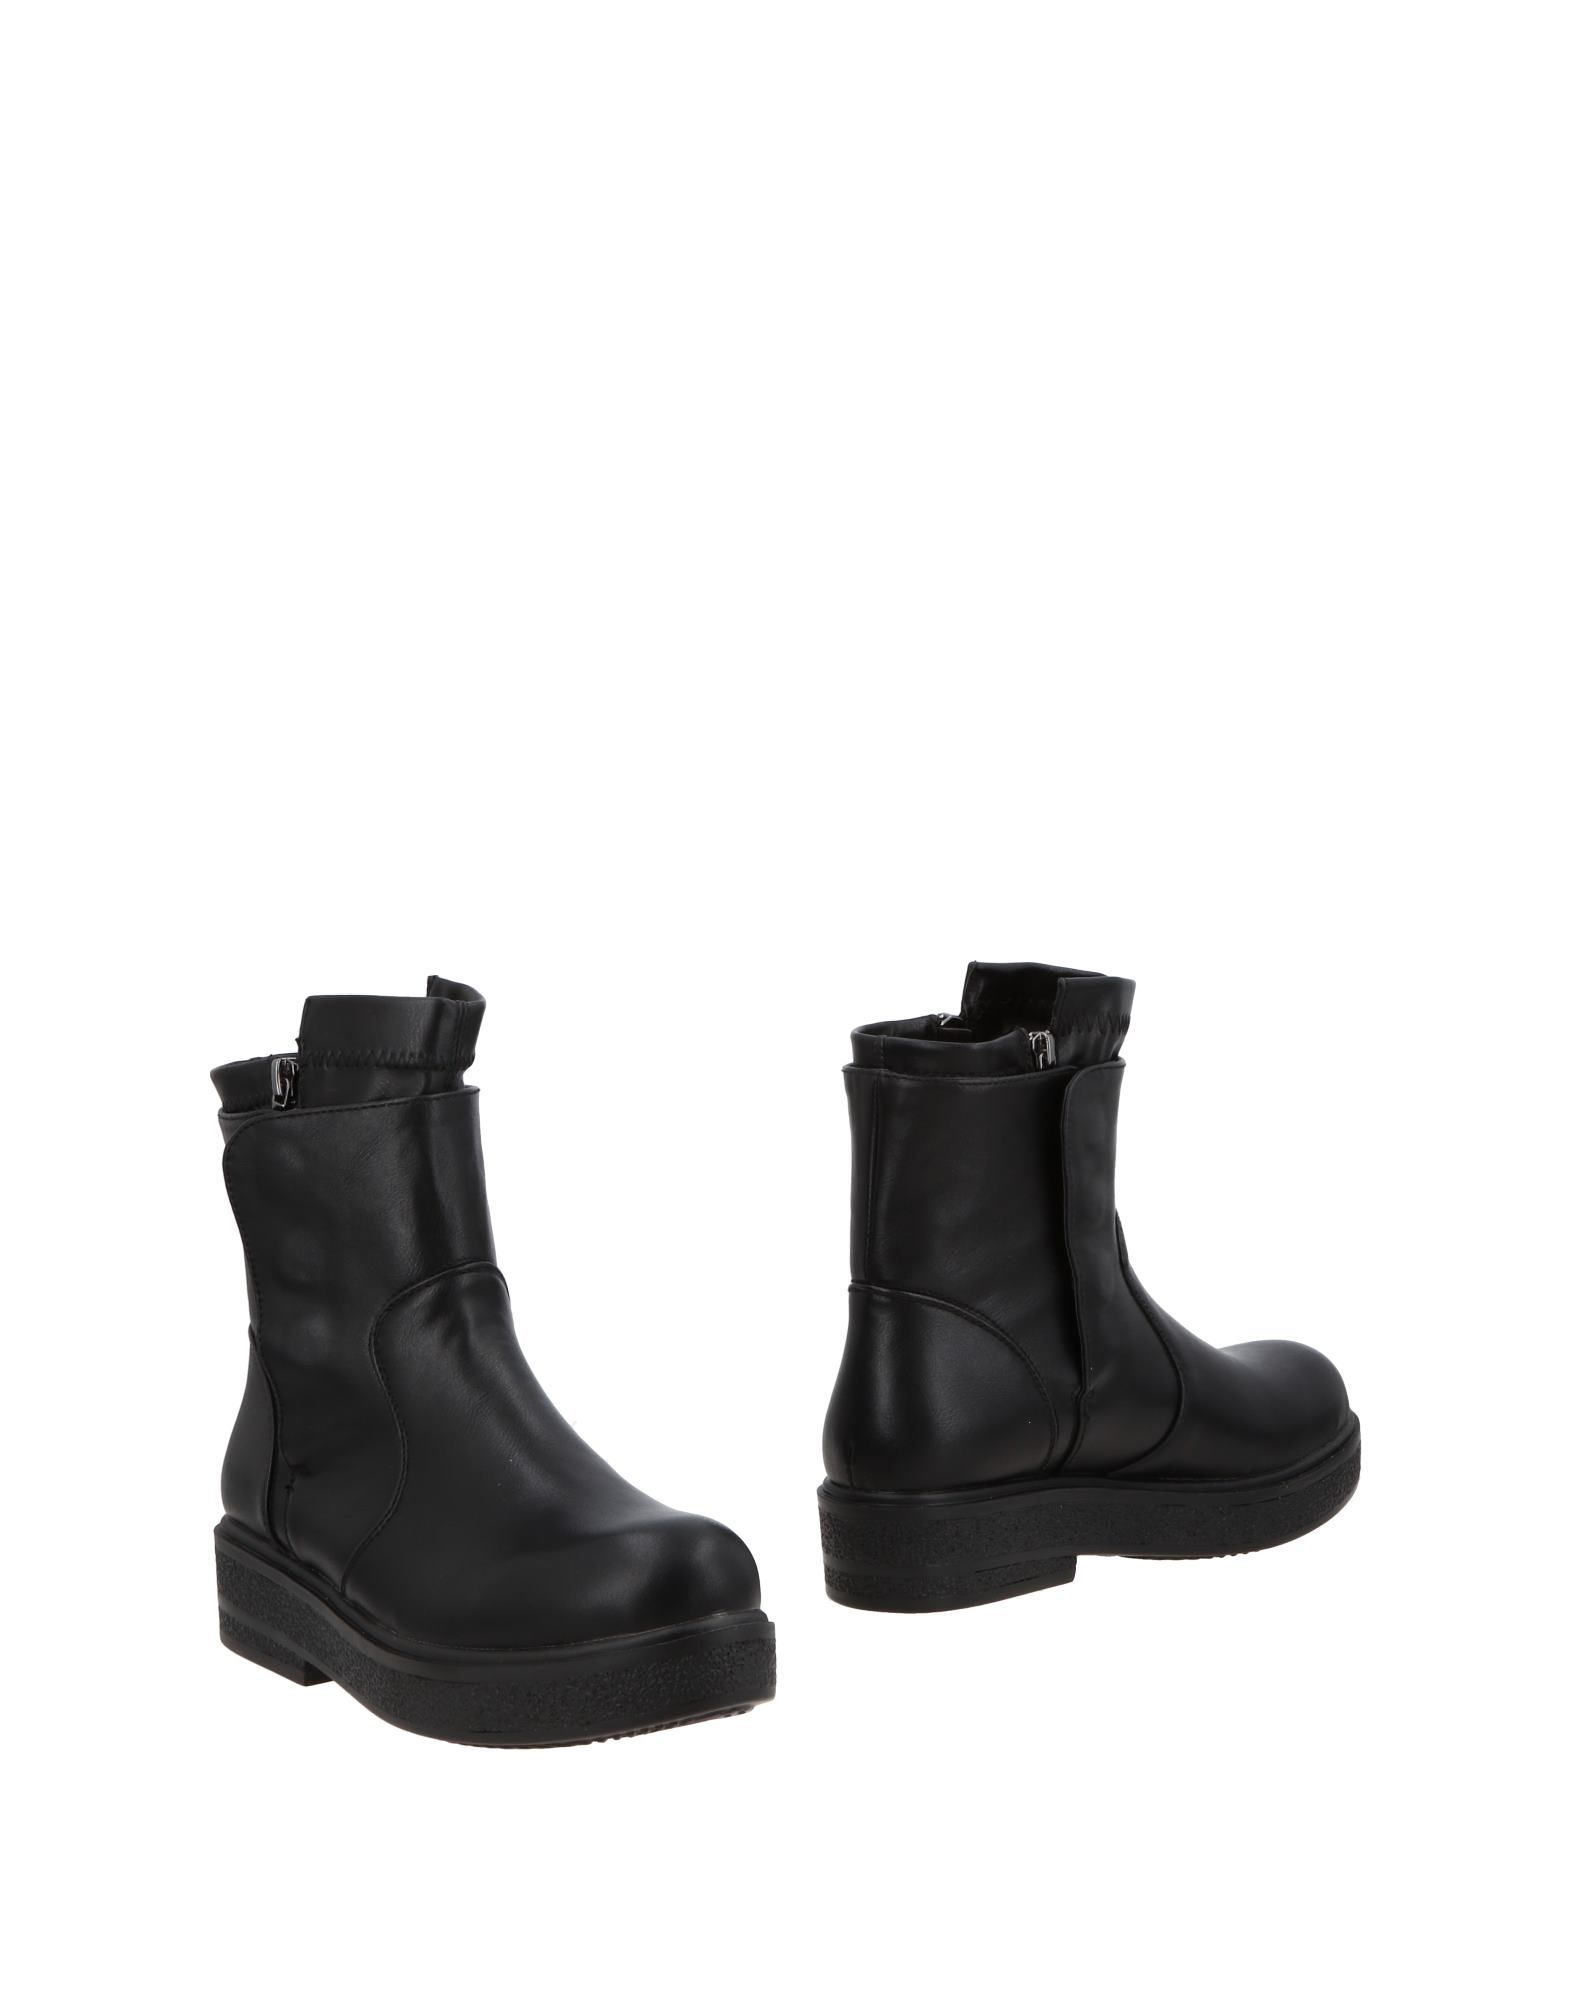 Police Women 883 Ankle Boot - Women Police Police 883 Ankle Boots online on  Australia - 11476049WH 056a86